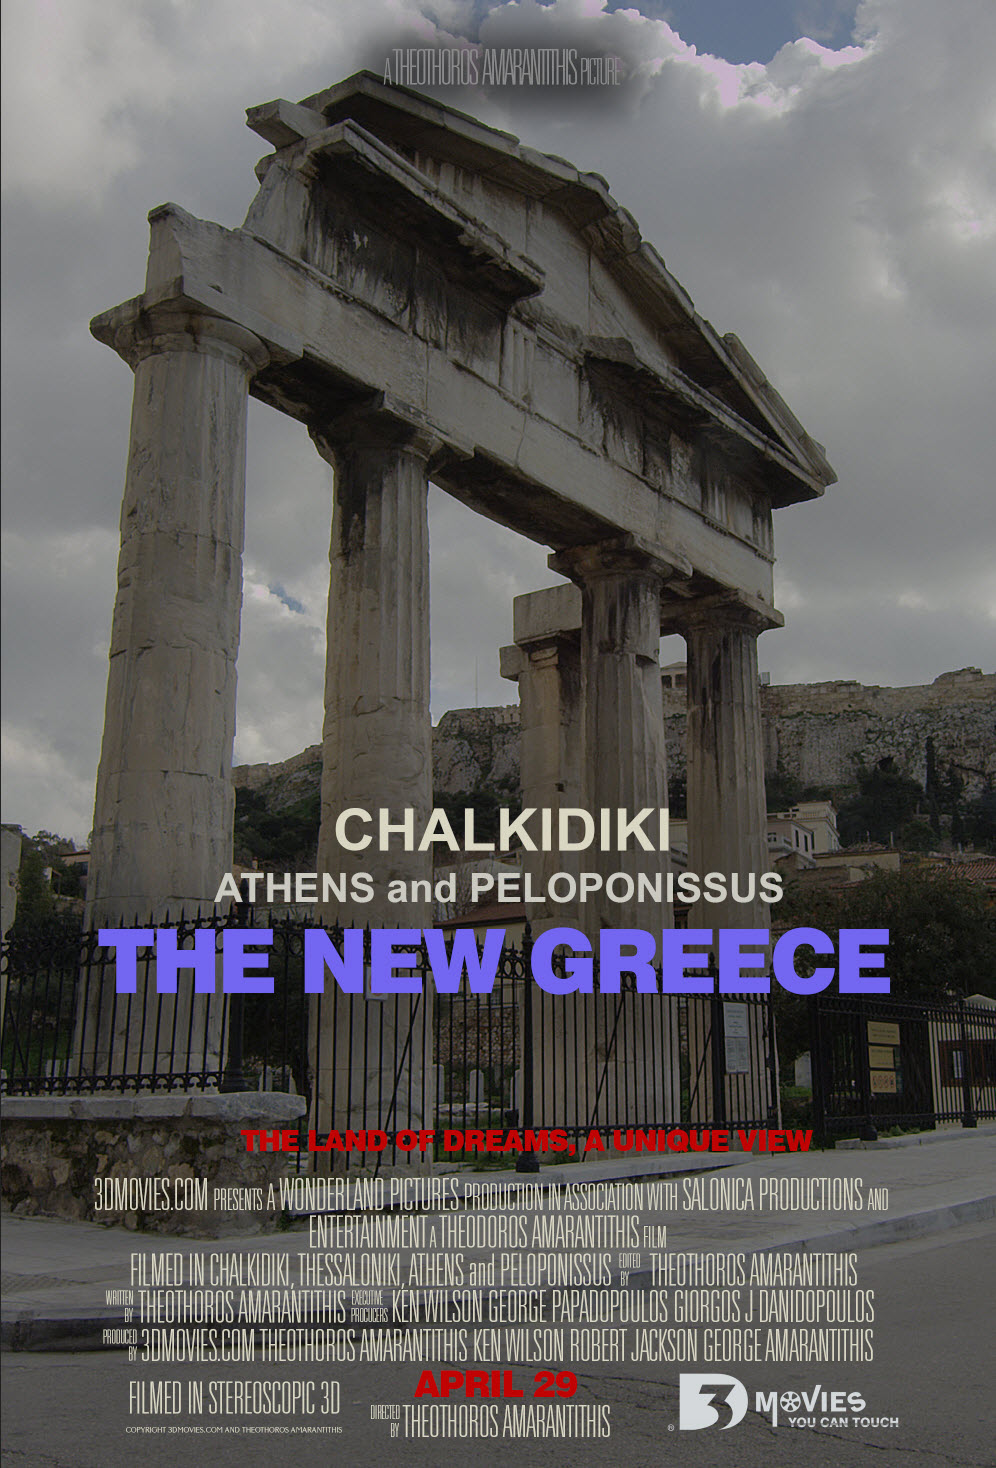 THE NEW GREECE - 3D MOVIES - A Ted Amaradidis film.